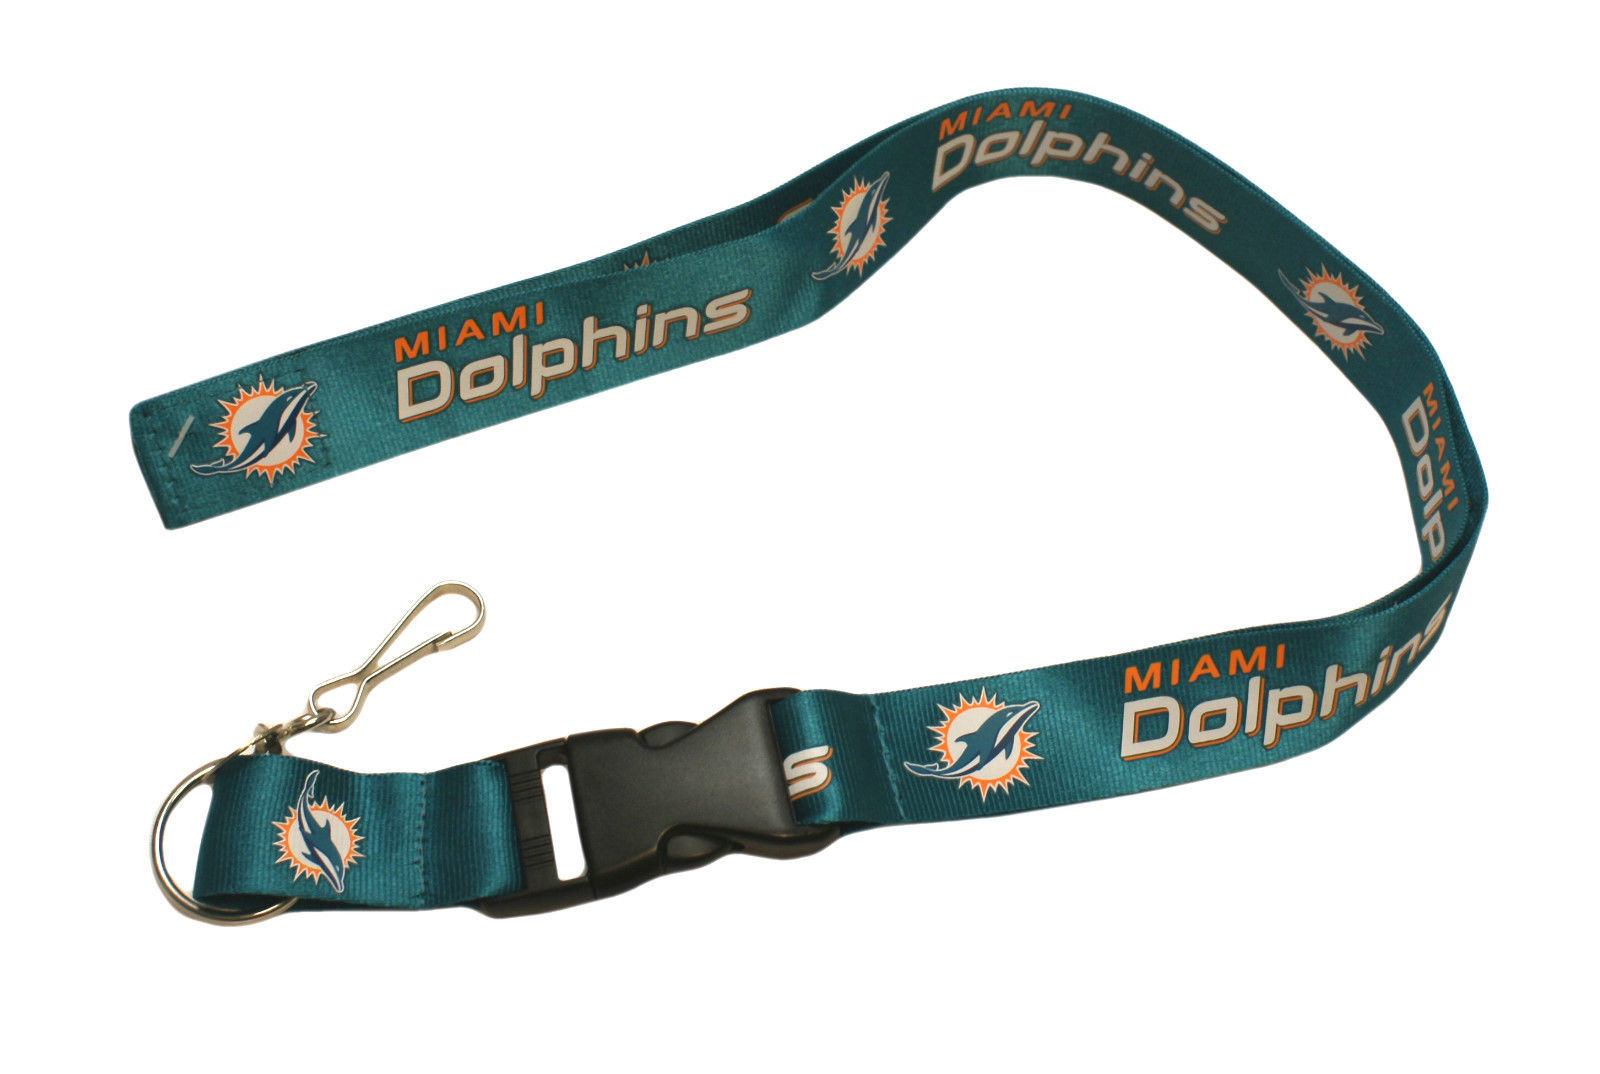 MIAMI DOLPHINS LANYARD KEYCHAIN TICKET HOLDER NFL FOOTBALL